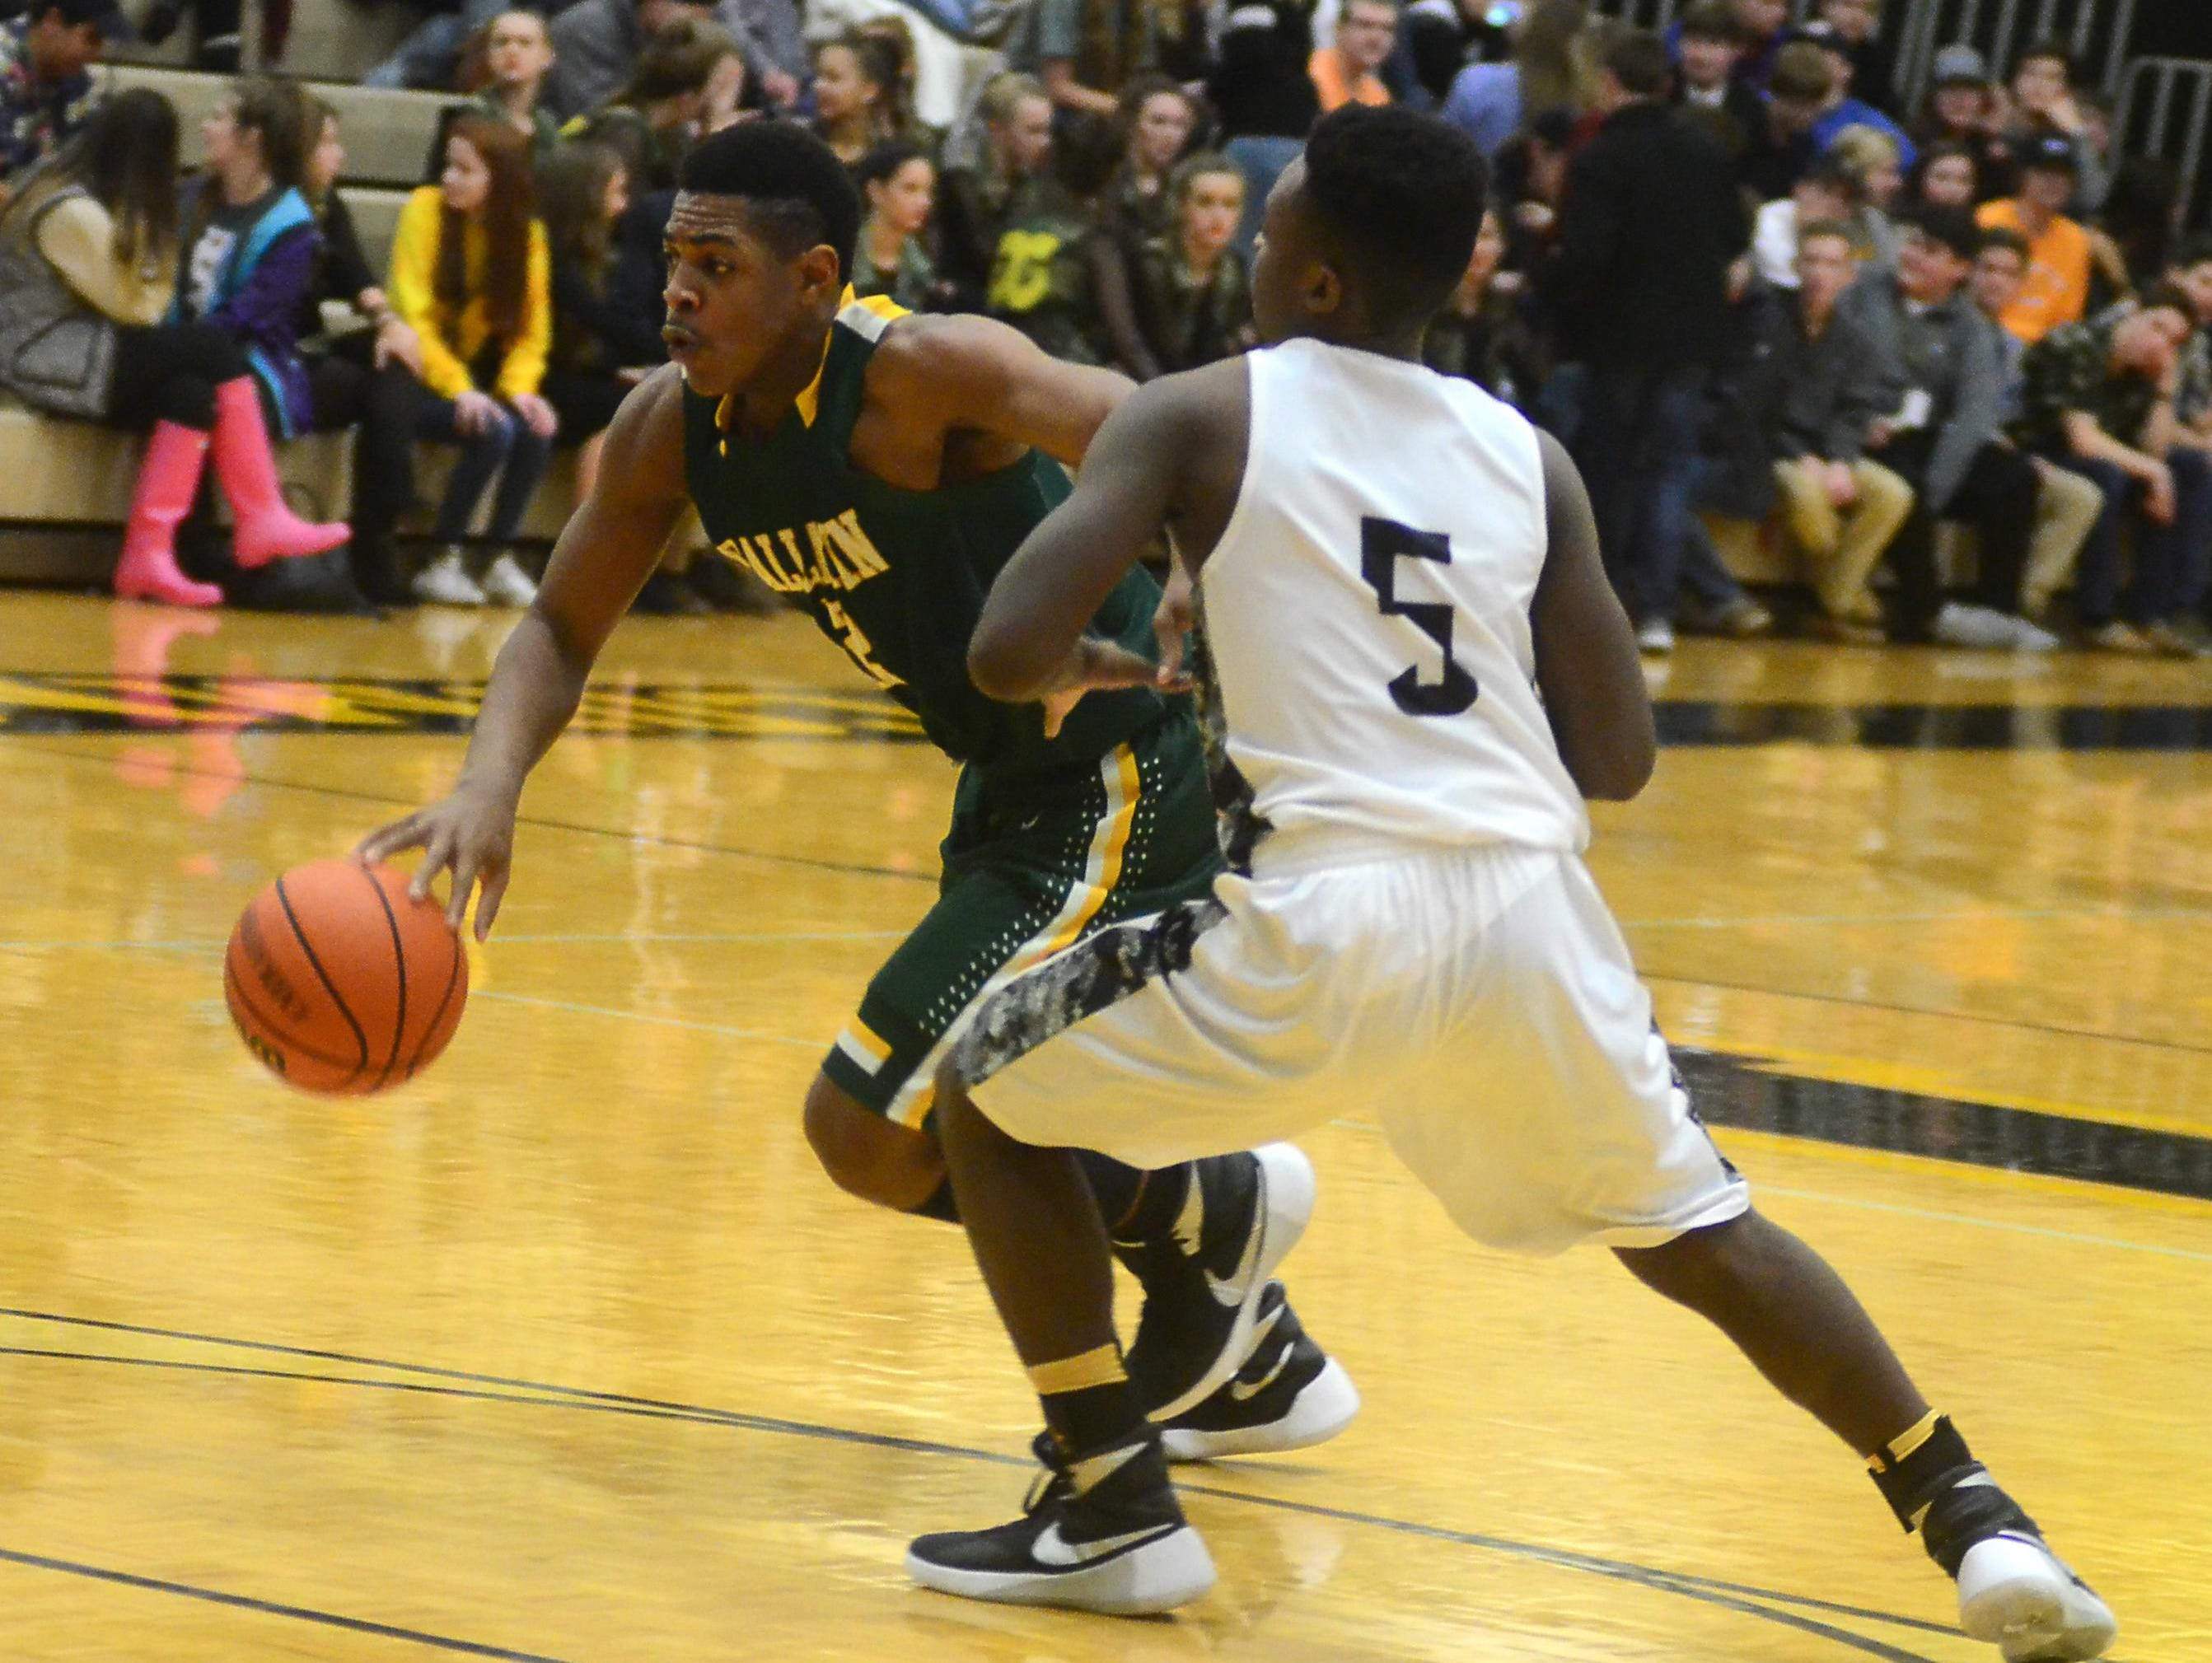 Gallatin High sophomore guard Zyun Mason dribbles into the lane as Hendersonville sophomore Dyilin Hoosier defends during third-quarter action. Mason scored 15 points in the Green Wave's double-overtime win.